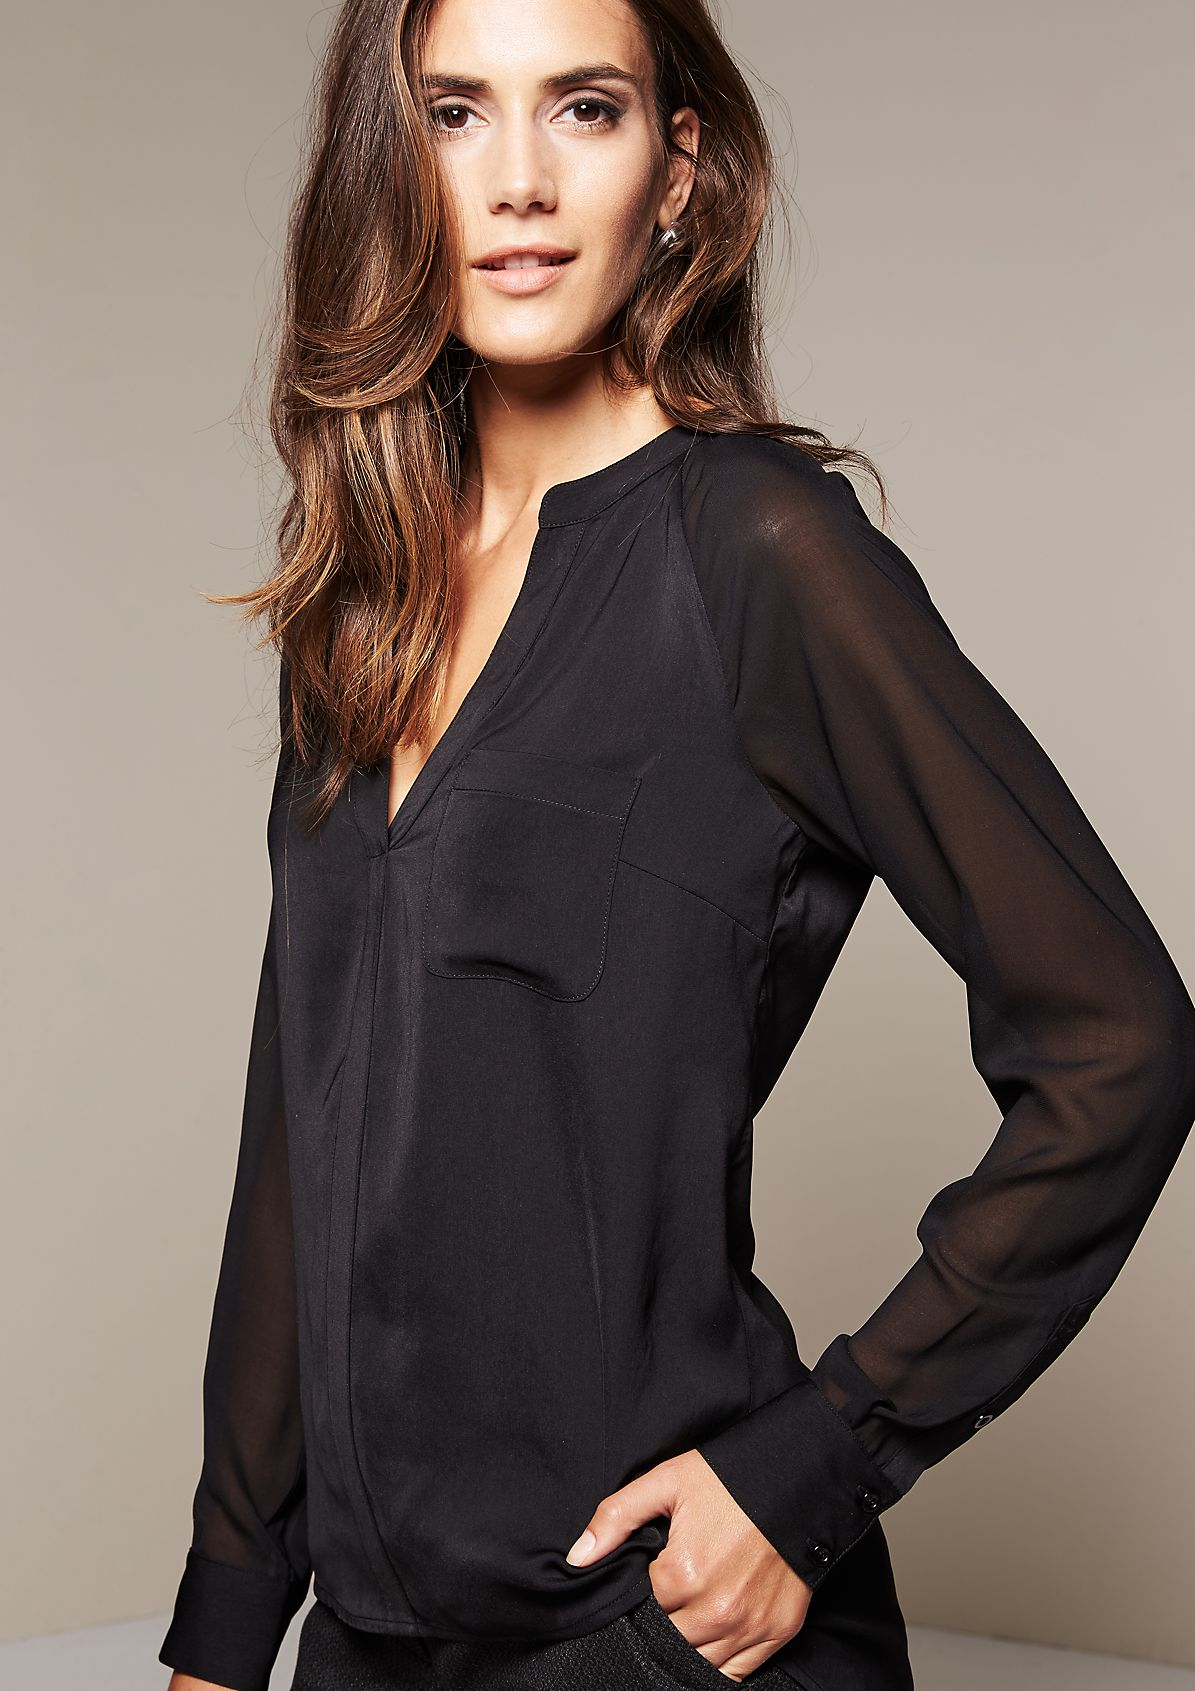 Delicate satin blouse with beautiful details from s.Oliver